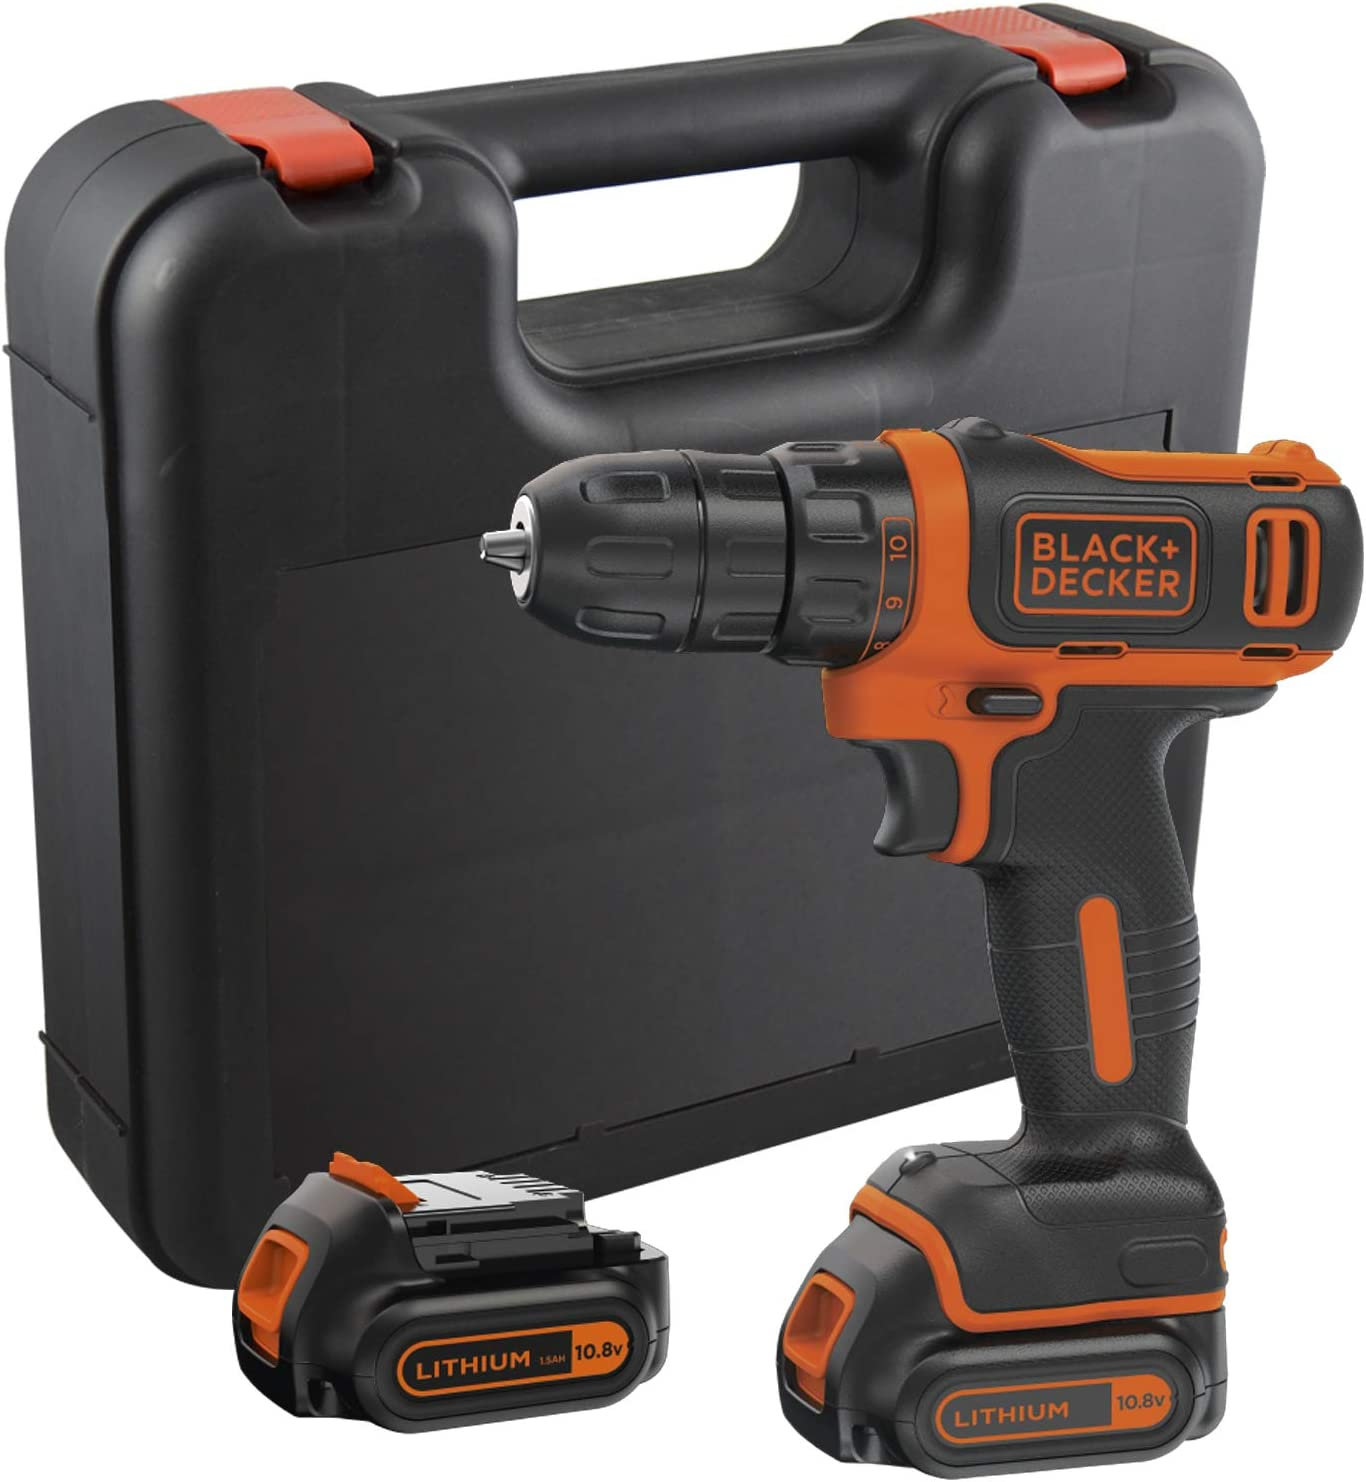 Test et Avis de la Black Decker de 10,8 V 2